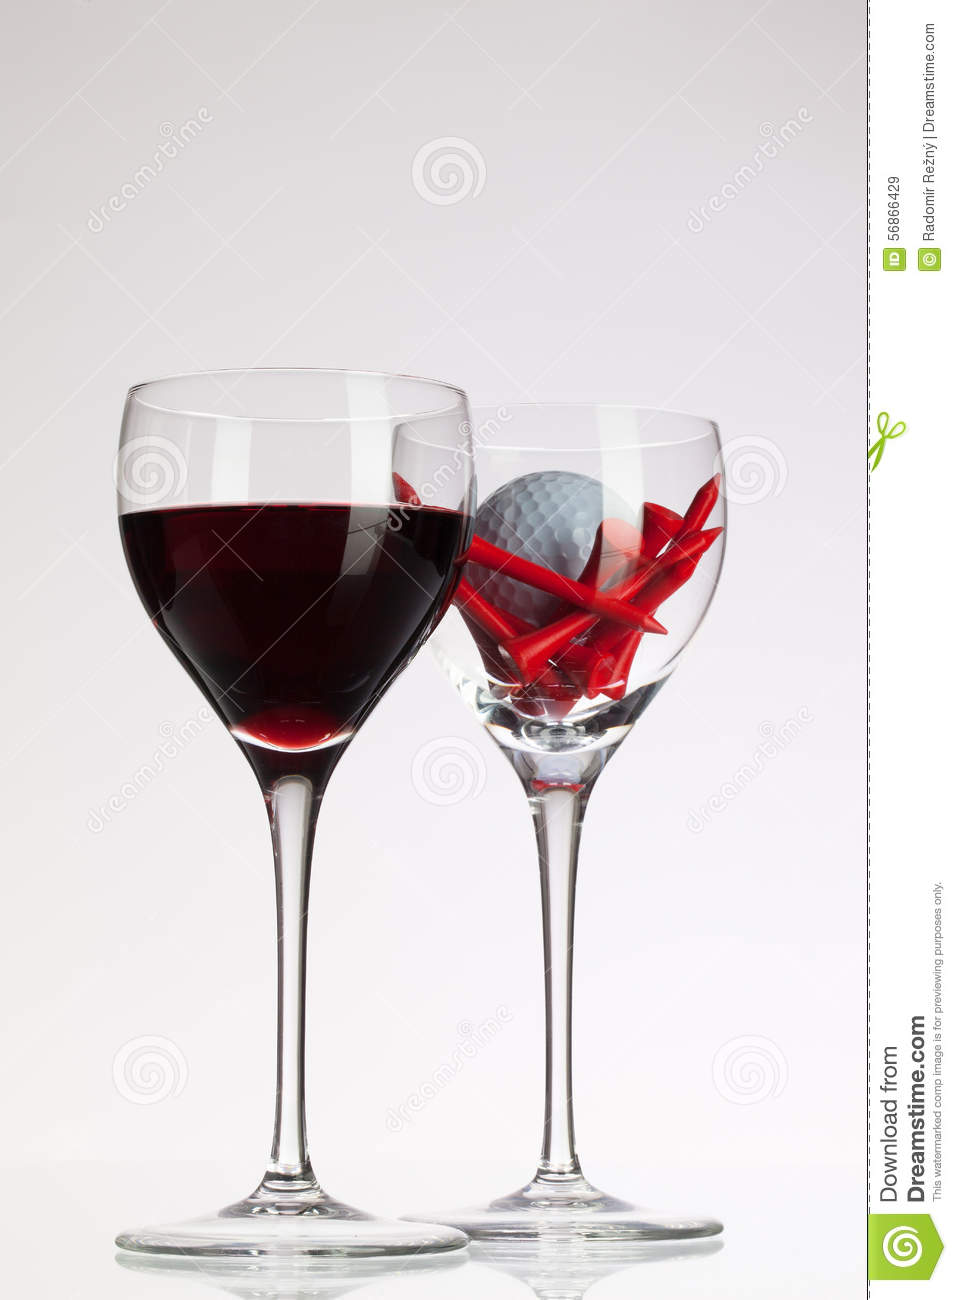 verres de vin avec le vin rouge et la boule de golf image stock image du restaurant passe. Black Bedroom Furniture Sets. Home Design Ideas